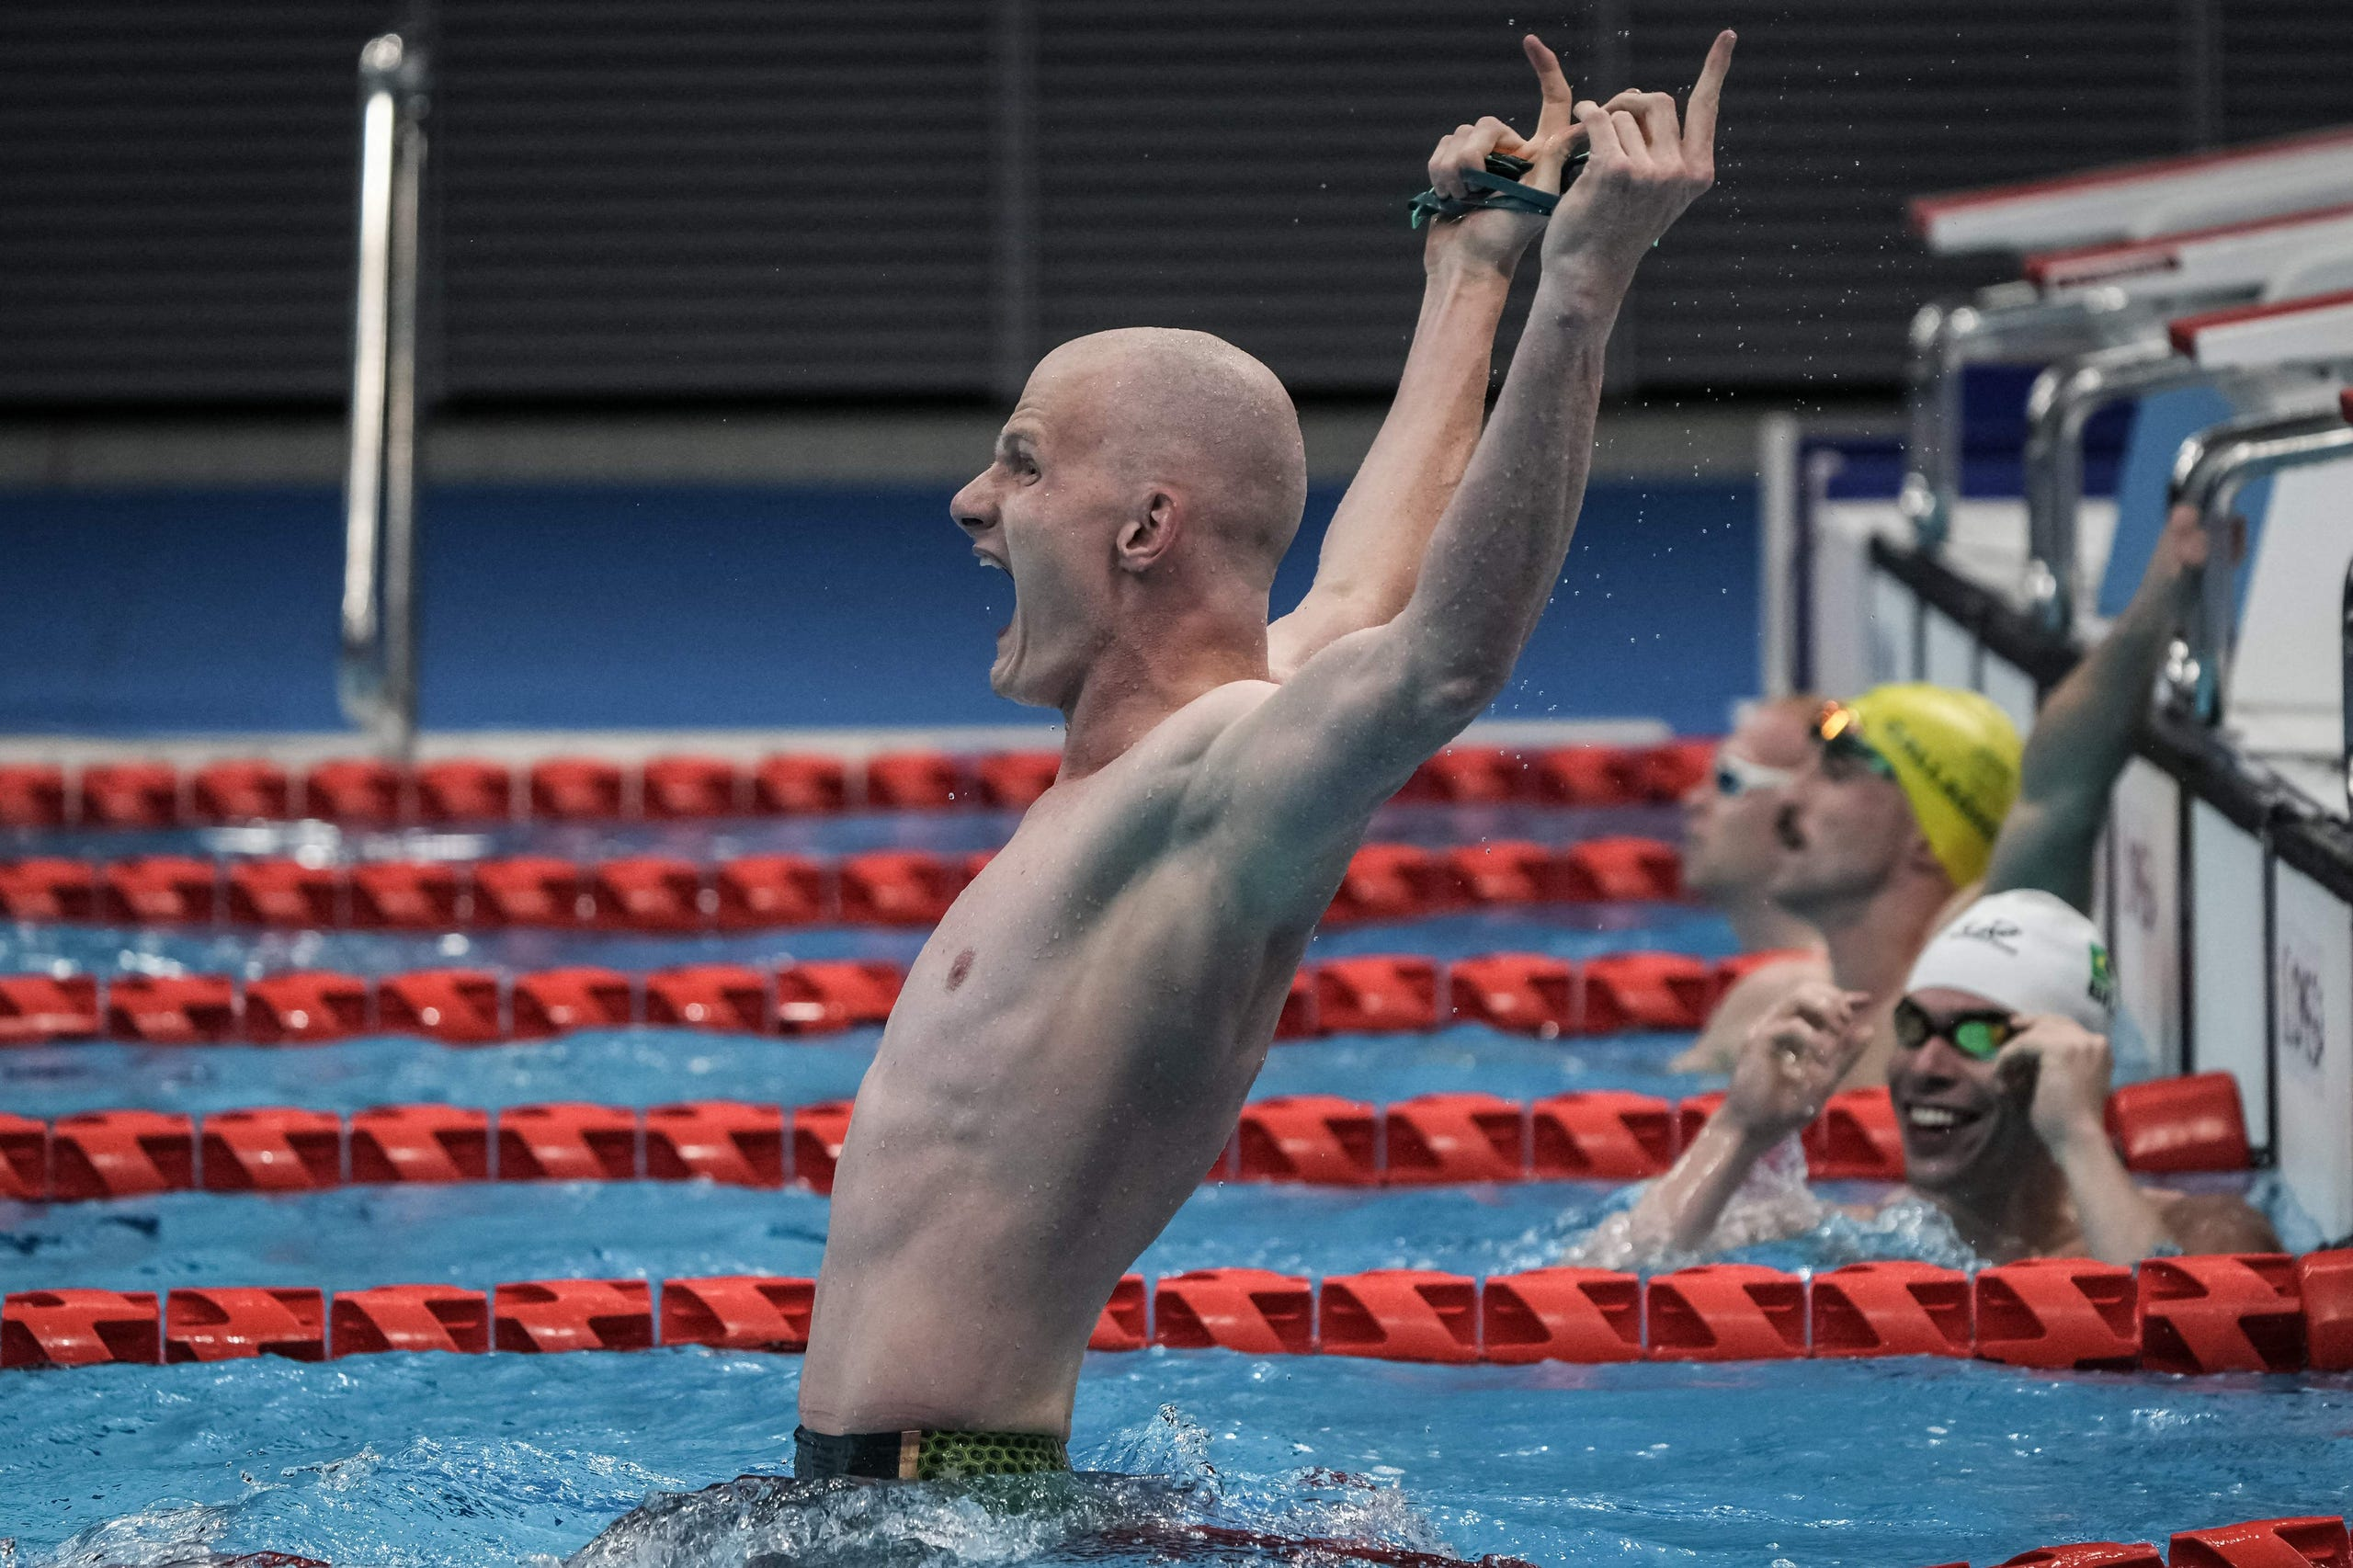 August 25, 2021: Australia's Rowan Crothers (L) reacts after winning the final of men's 50m freestyle (S10) at the Tokyo 2020 Paralympic Games at Tokyo Aquatics Centre in Tokyo.